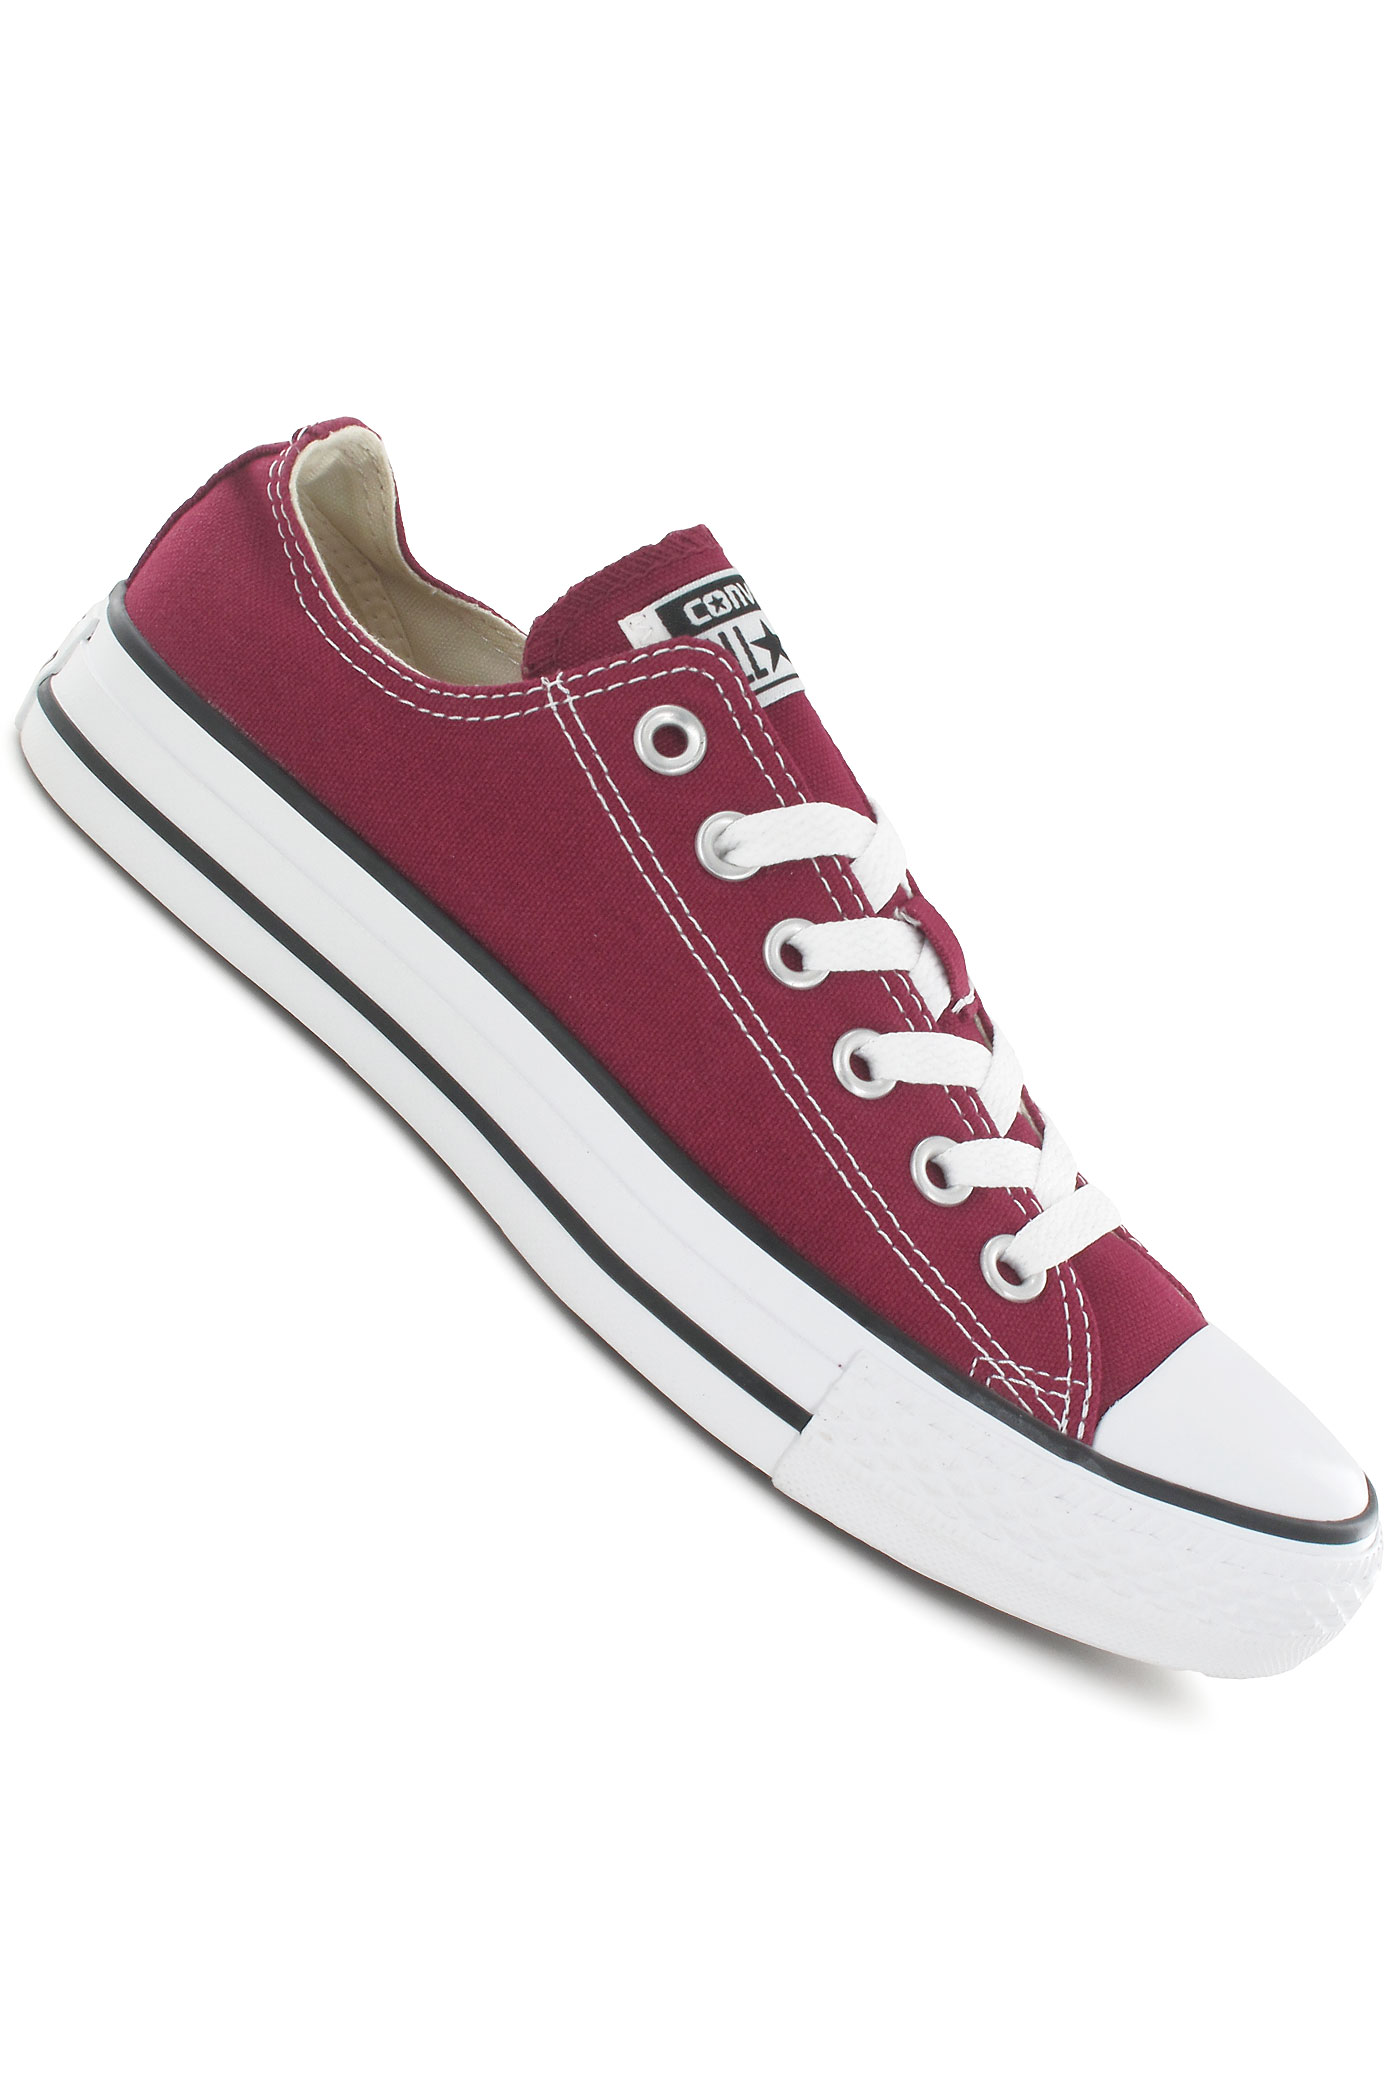 converse chuck all canvas shoes maroon buy